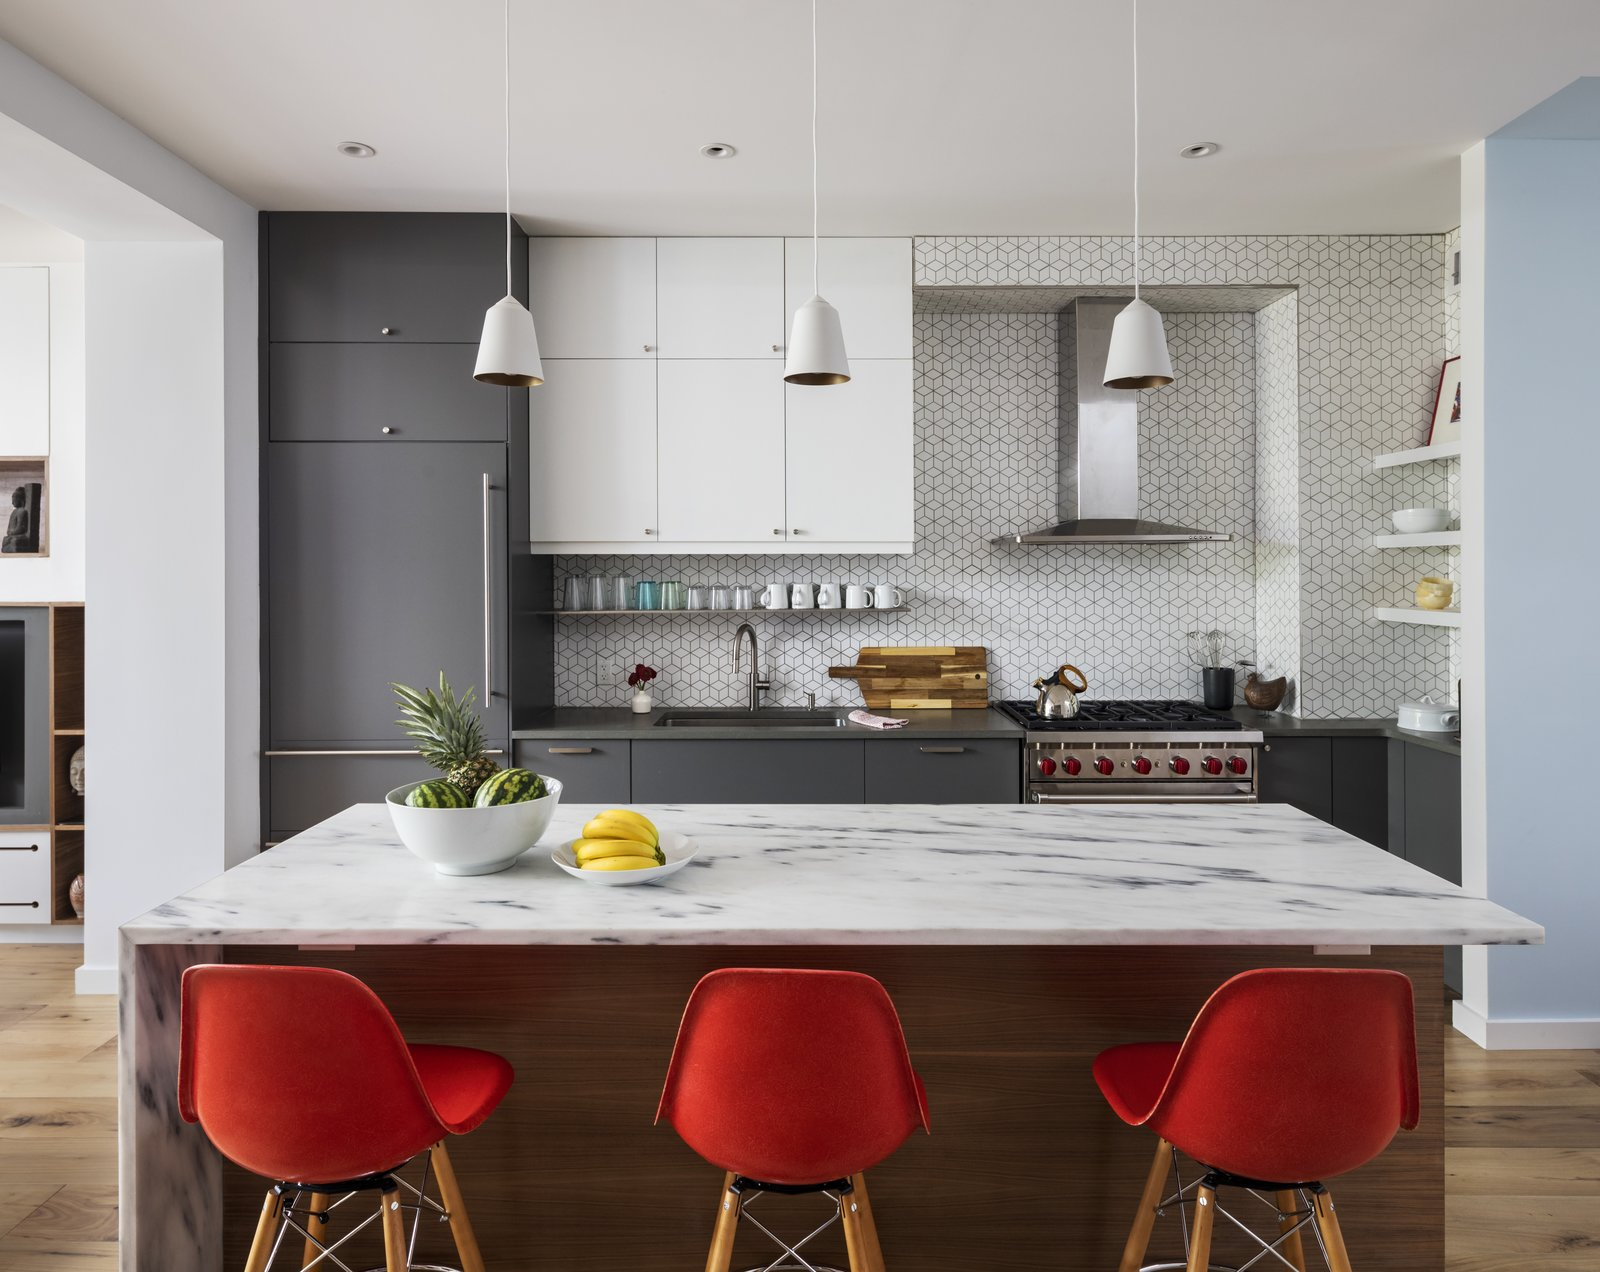 BFDO Architects Crown Heights Brownstone kitchen